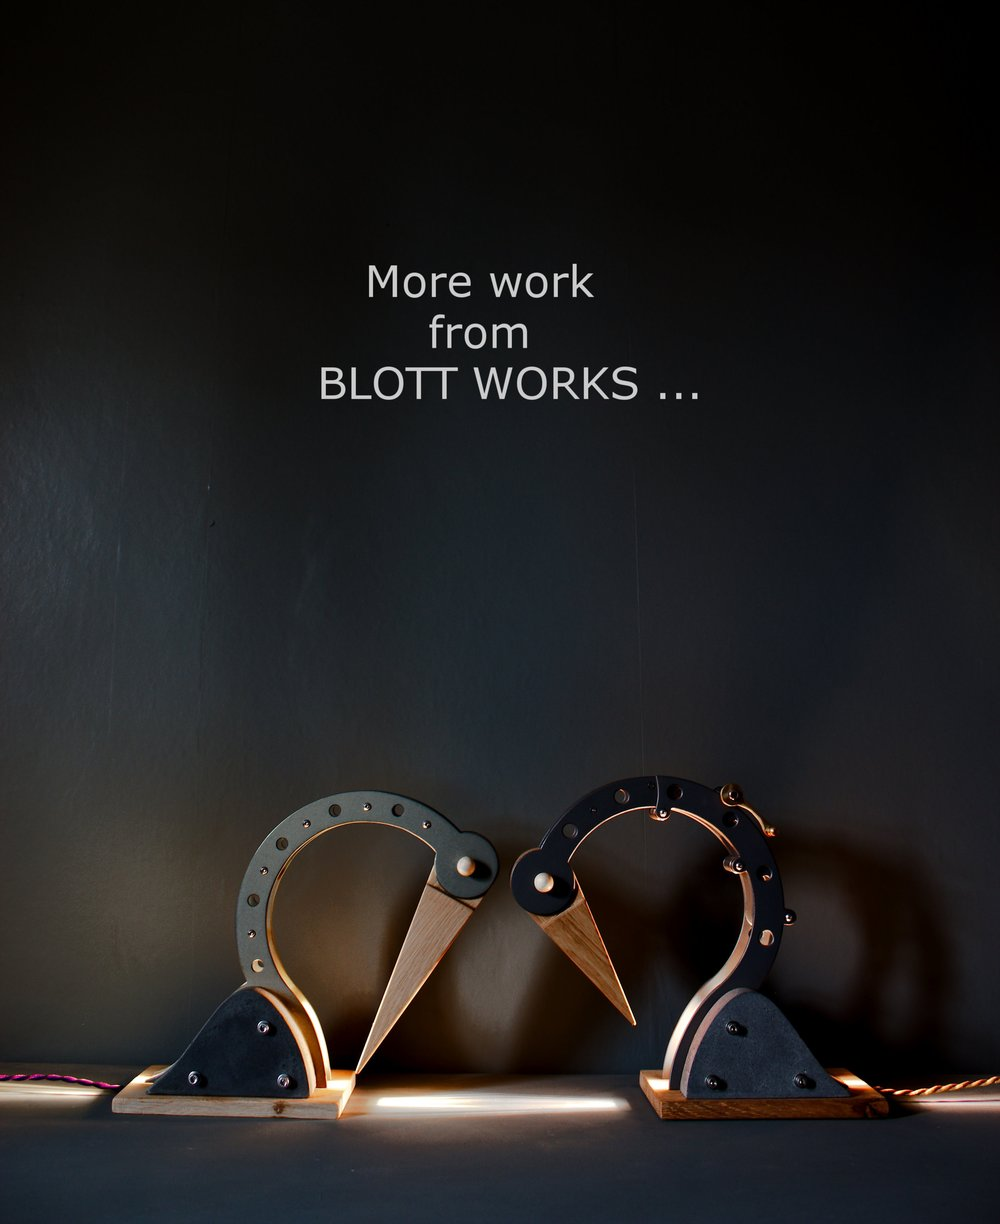 Click here to see more work from BLOTT WORKS -